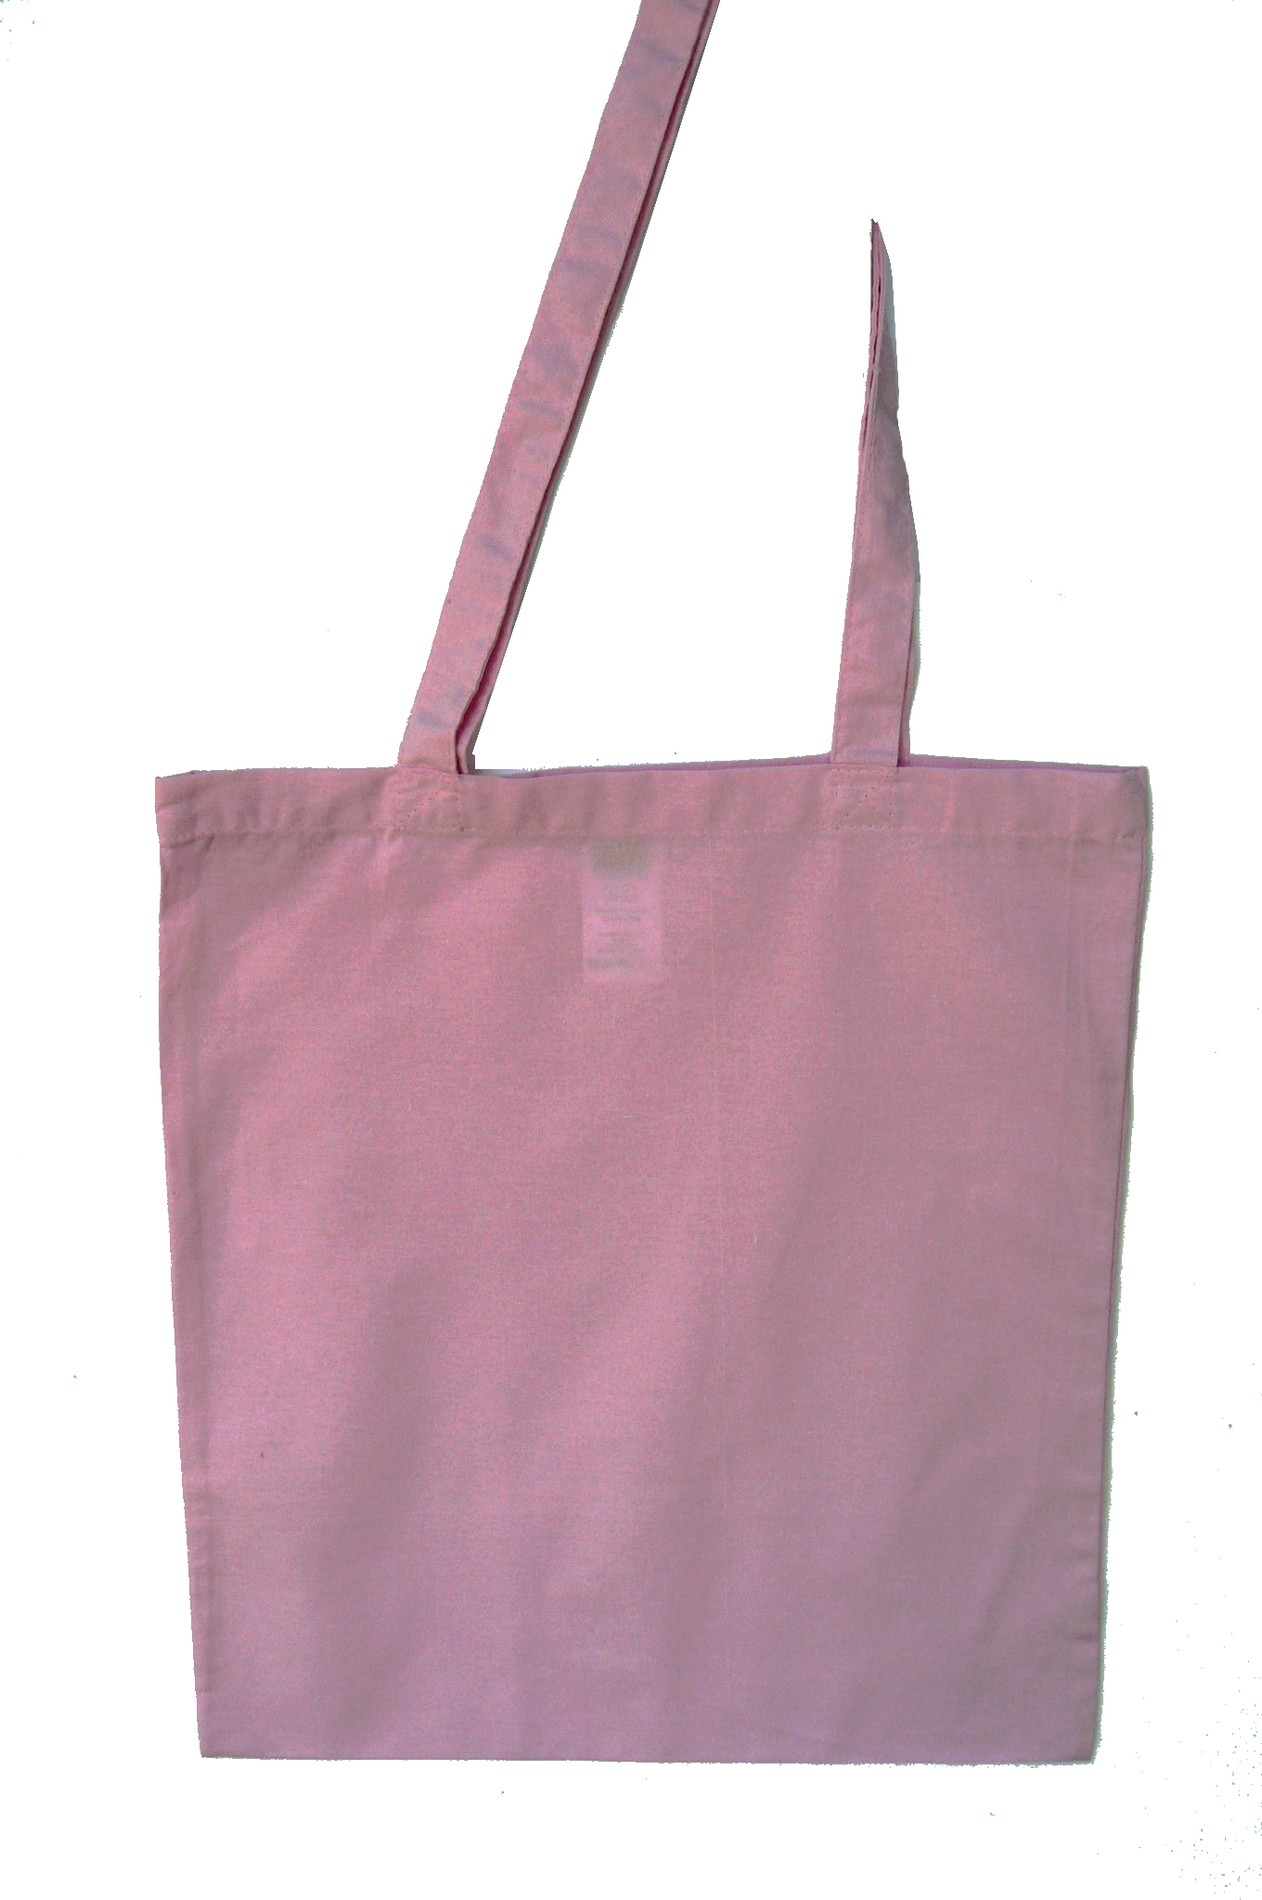 Sac shopping Tote bag Rose pâle à customiser